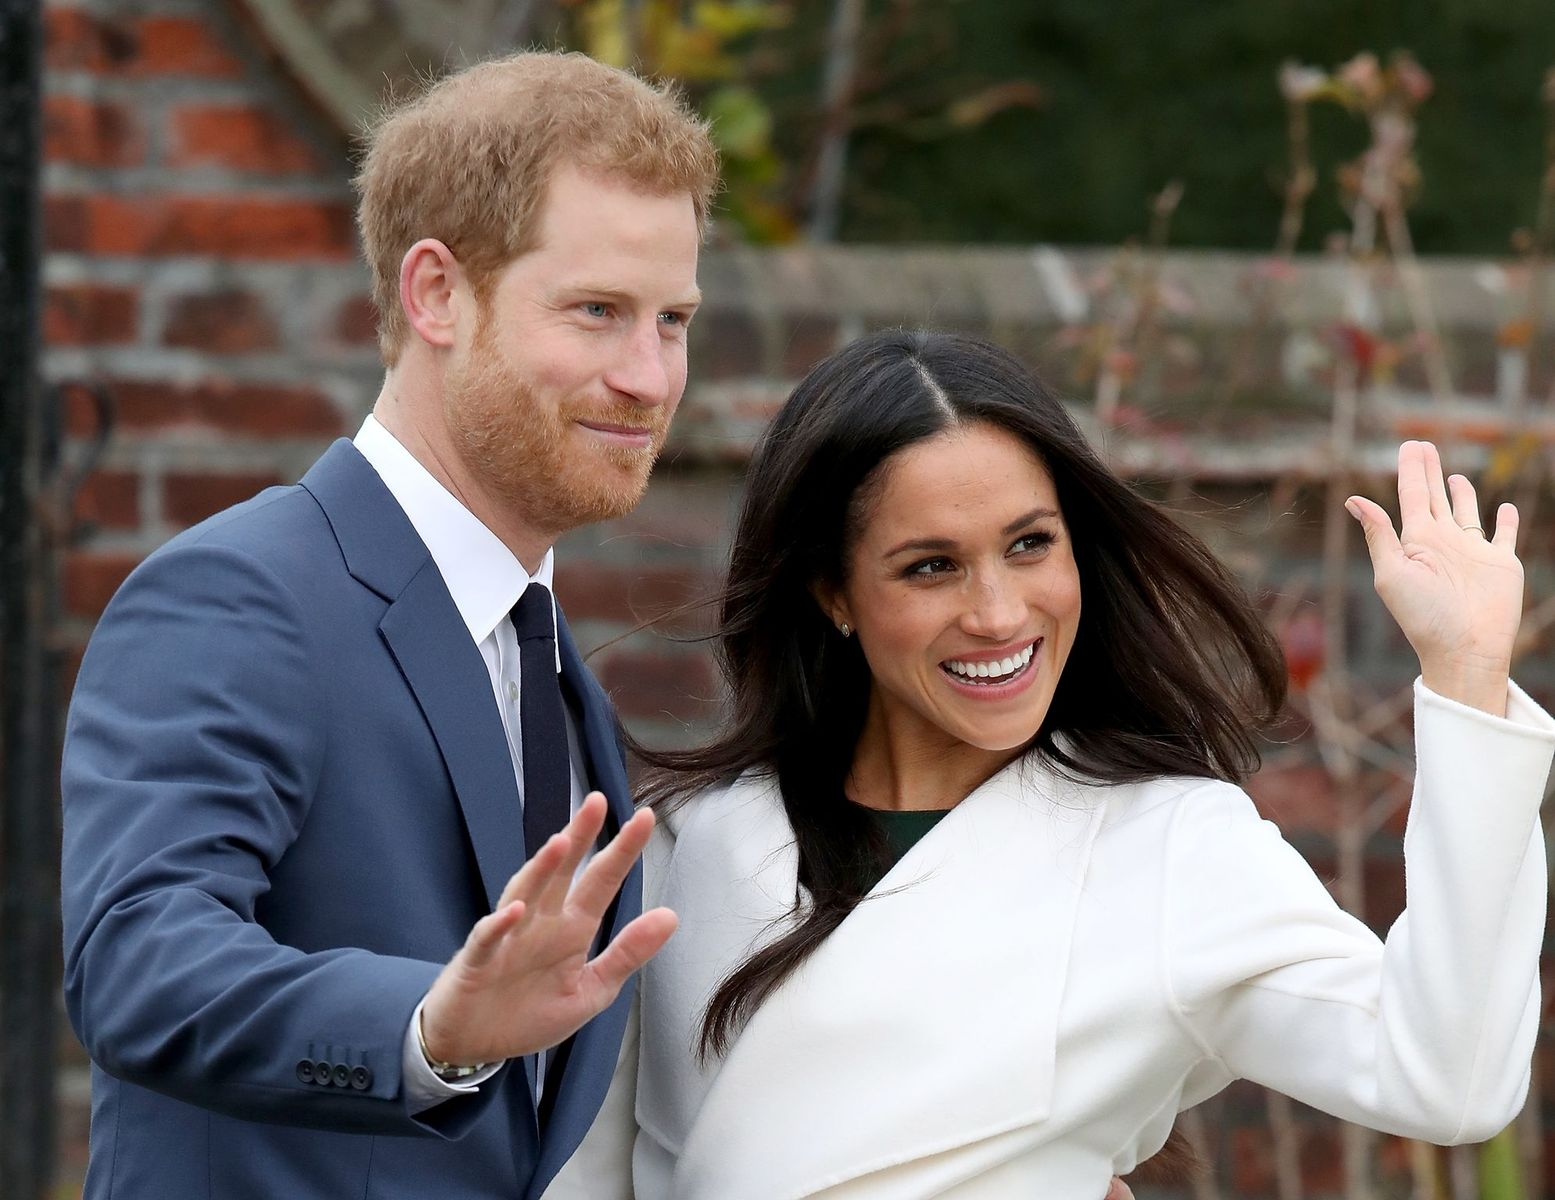 Prince Harry and Meghan Markle announce their engagement at Kensington Palace on November 27, 2017, in London, England | Photo: Chris Jackson/Getty Images